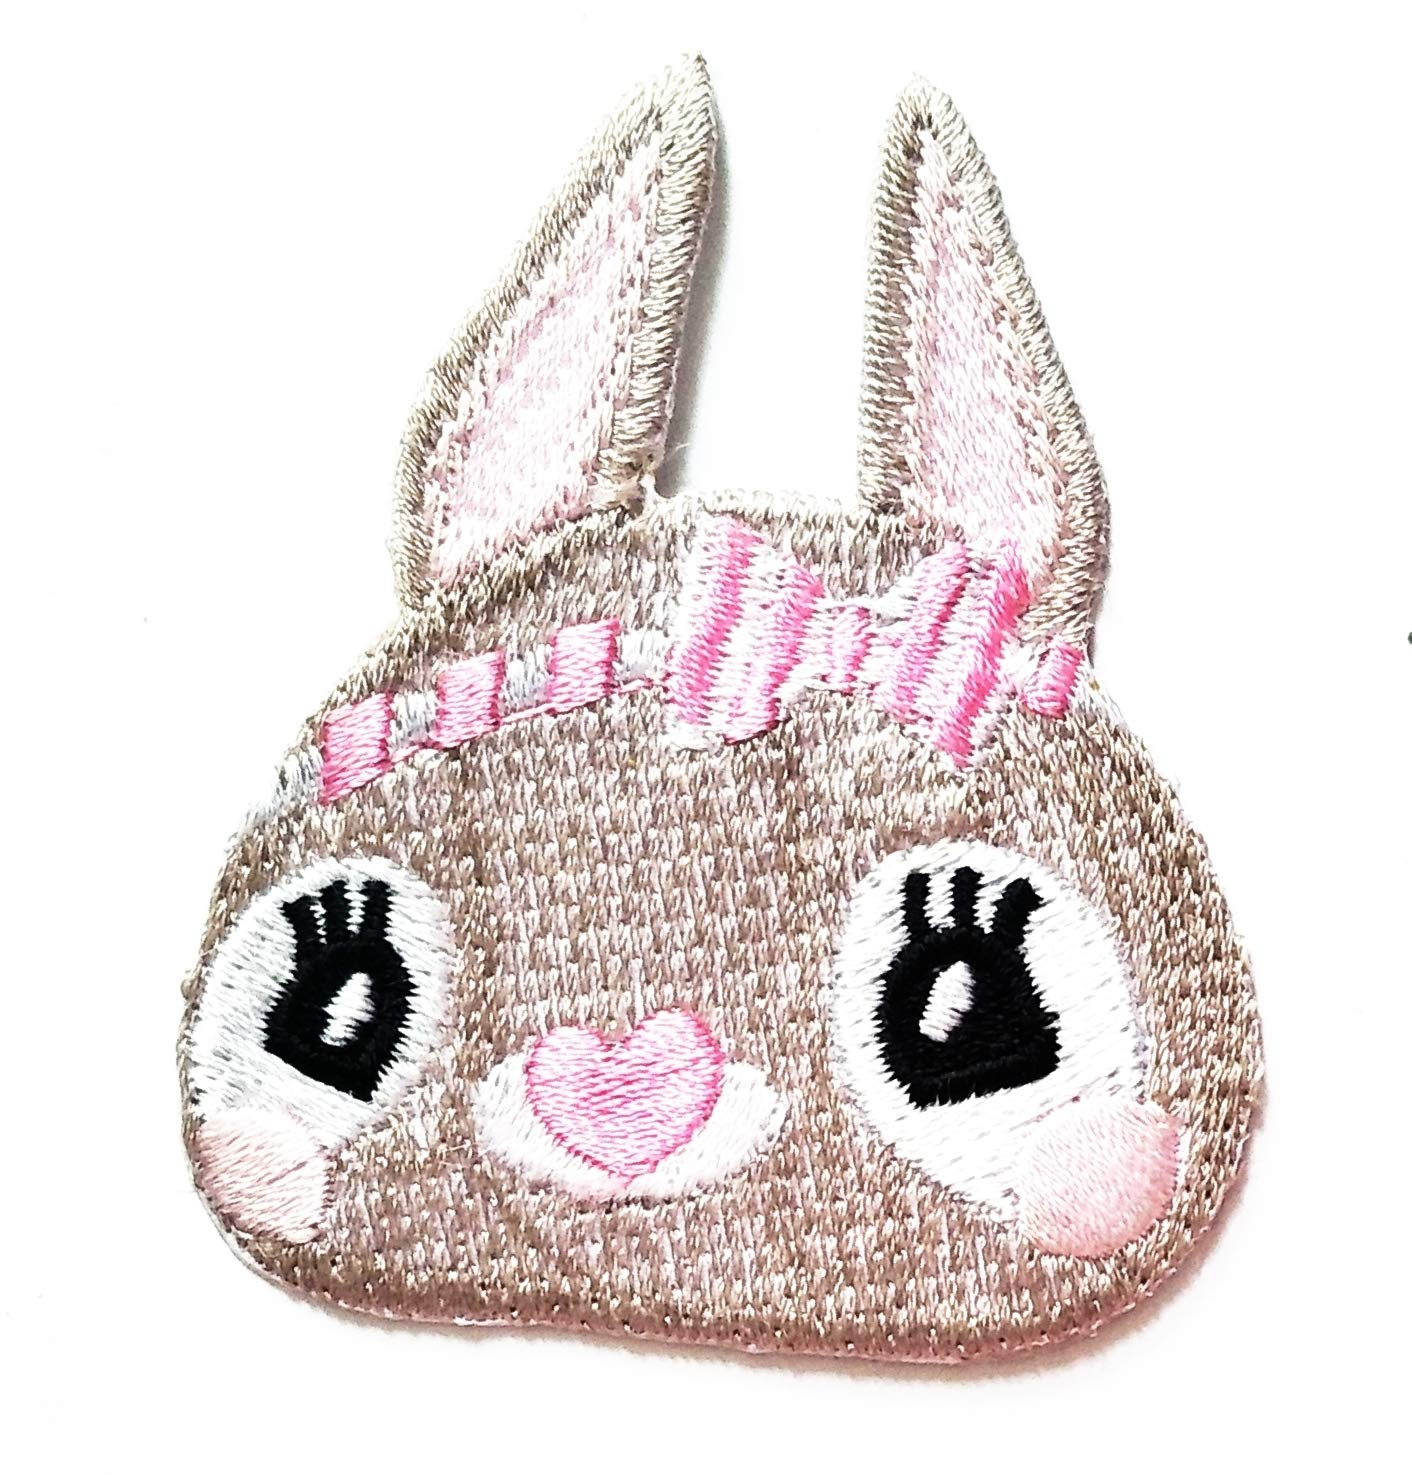 Nipitshop Patches Cute Bunny Rabbit Pink Bow Heart Shaped Nose Animal Cartoon Kids Patch Embroidered Iron On Patch for Clothes Backpacks T-Shirt Jeans Skirt Vests Scarf Hat Bag